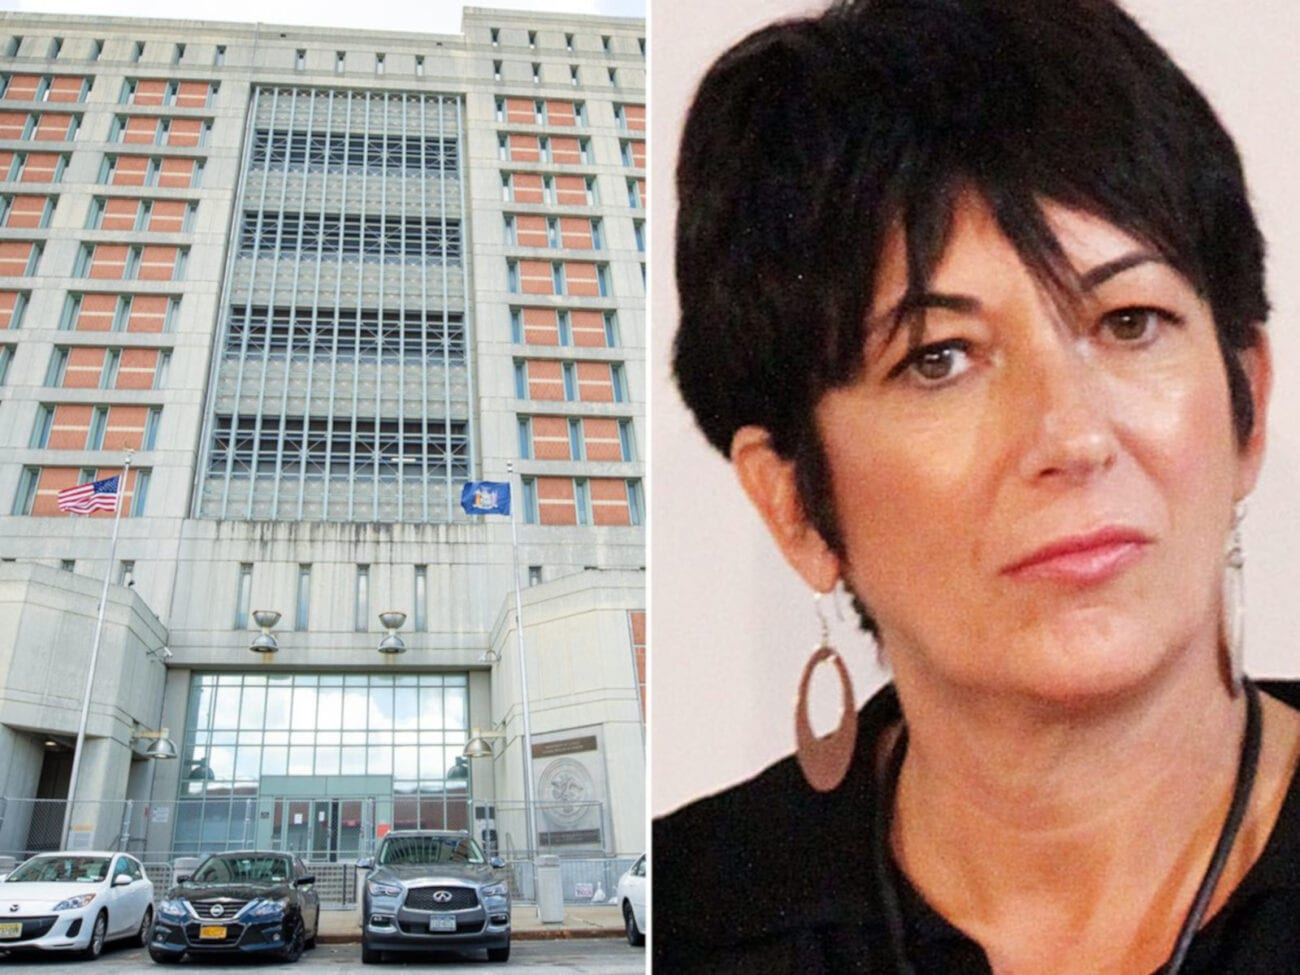 Is Ghislaine Maxwell being mistreated in jail? Learn what Maxwell and her lawyers have to say about her conditions in prison.